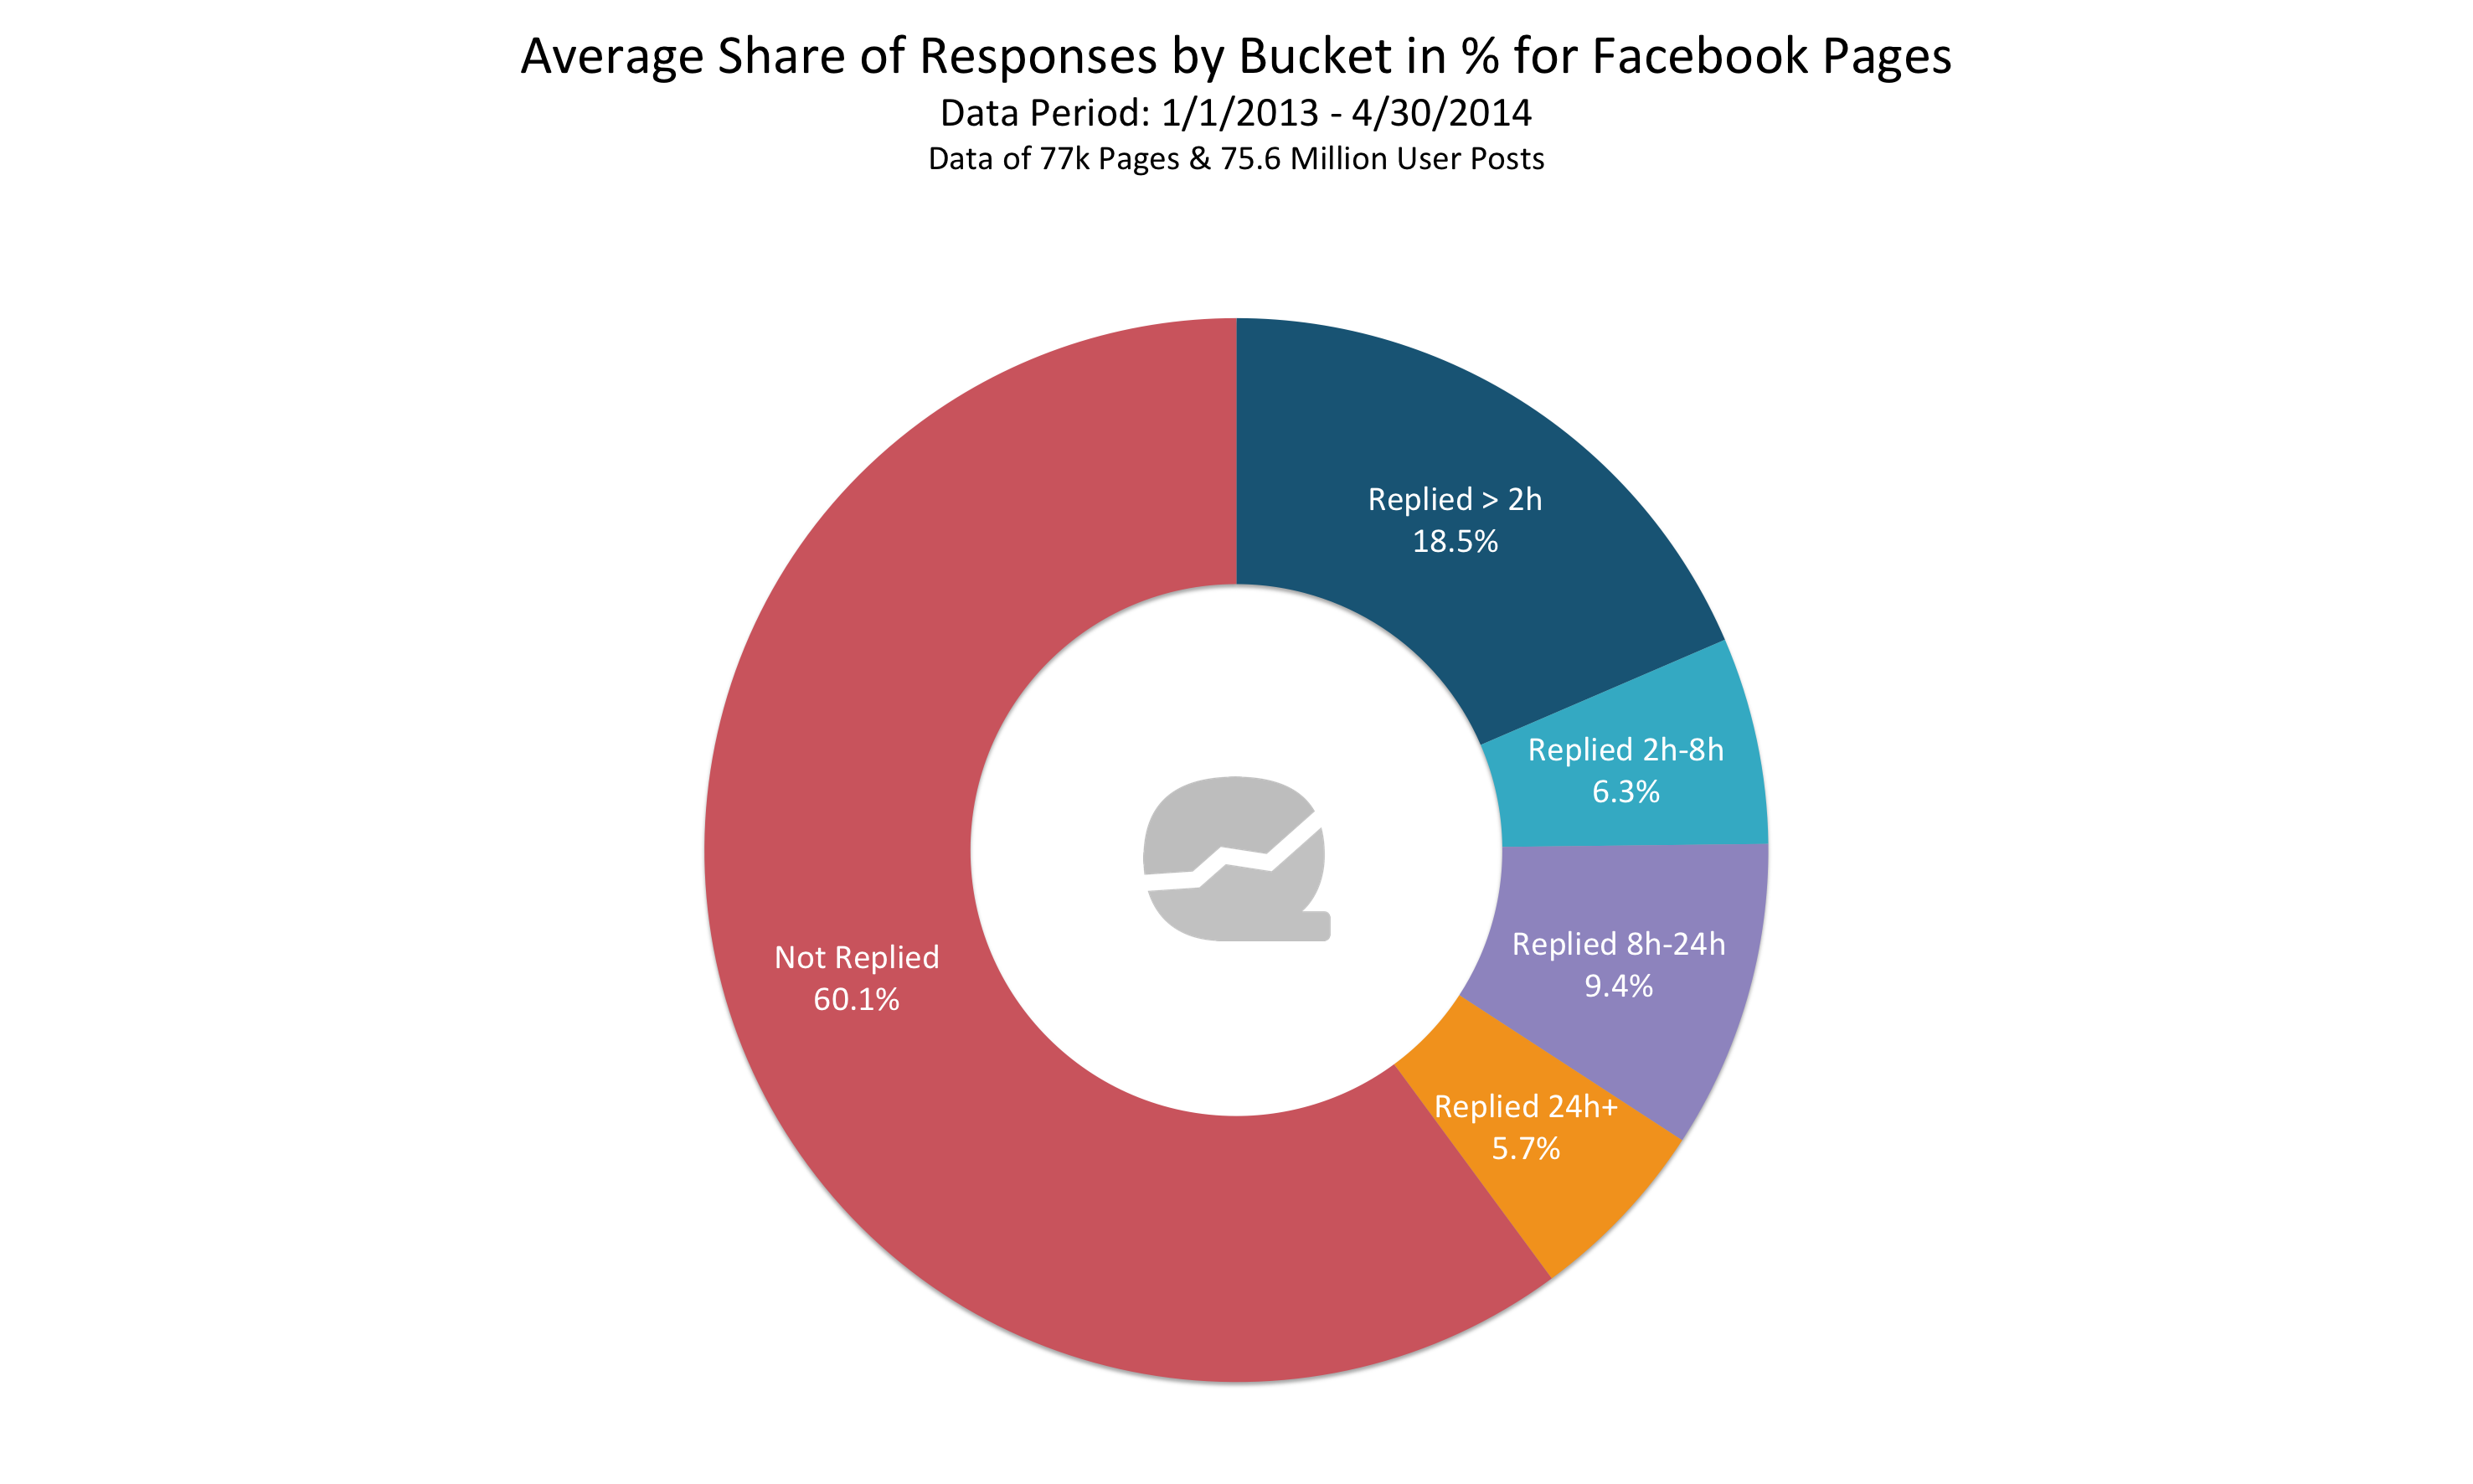 quintly_Average_Share_Of_Responses_By_Bucket_For_Facebook_Pages